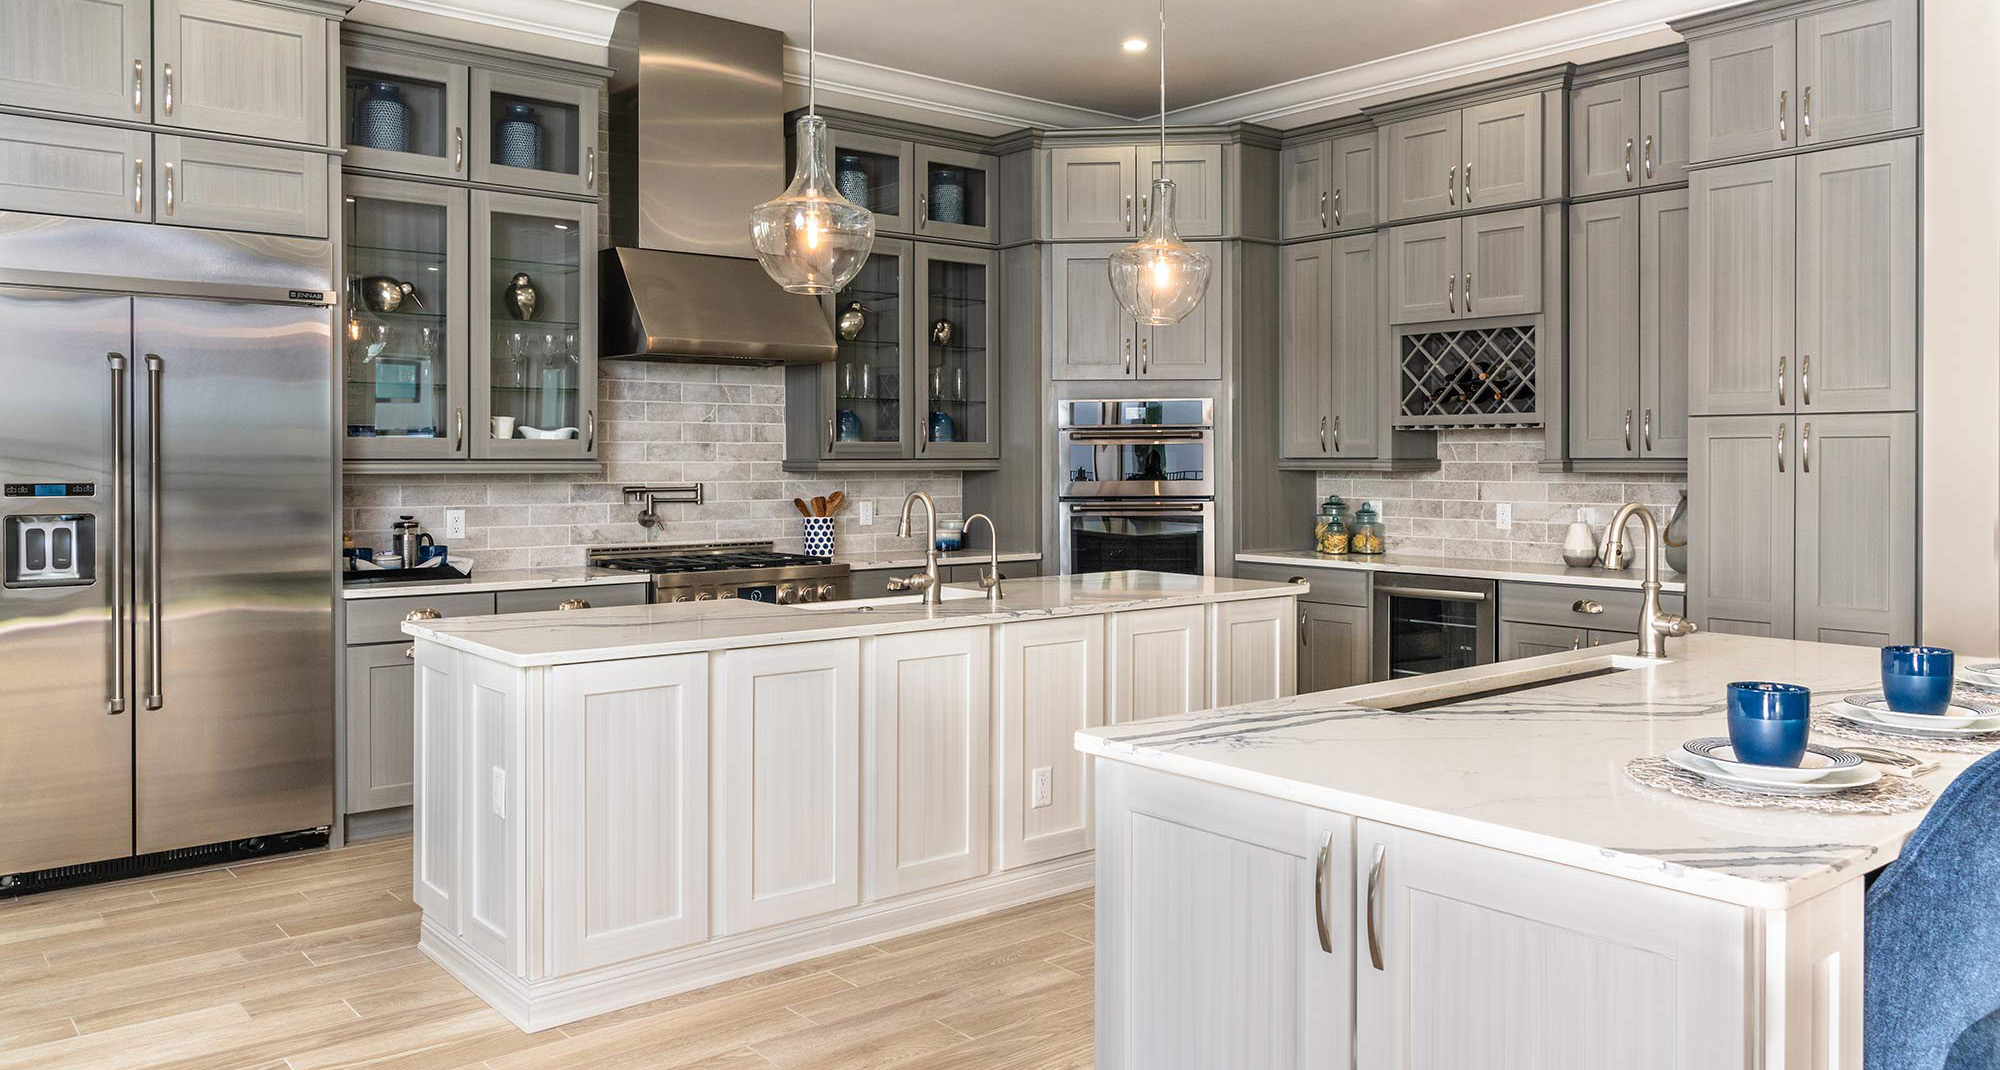 Crystal River Kitchen Cabinets, Bathroom Cabinets, Citrus ...